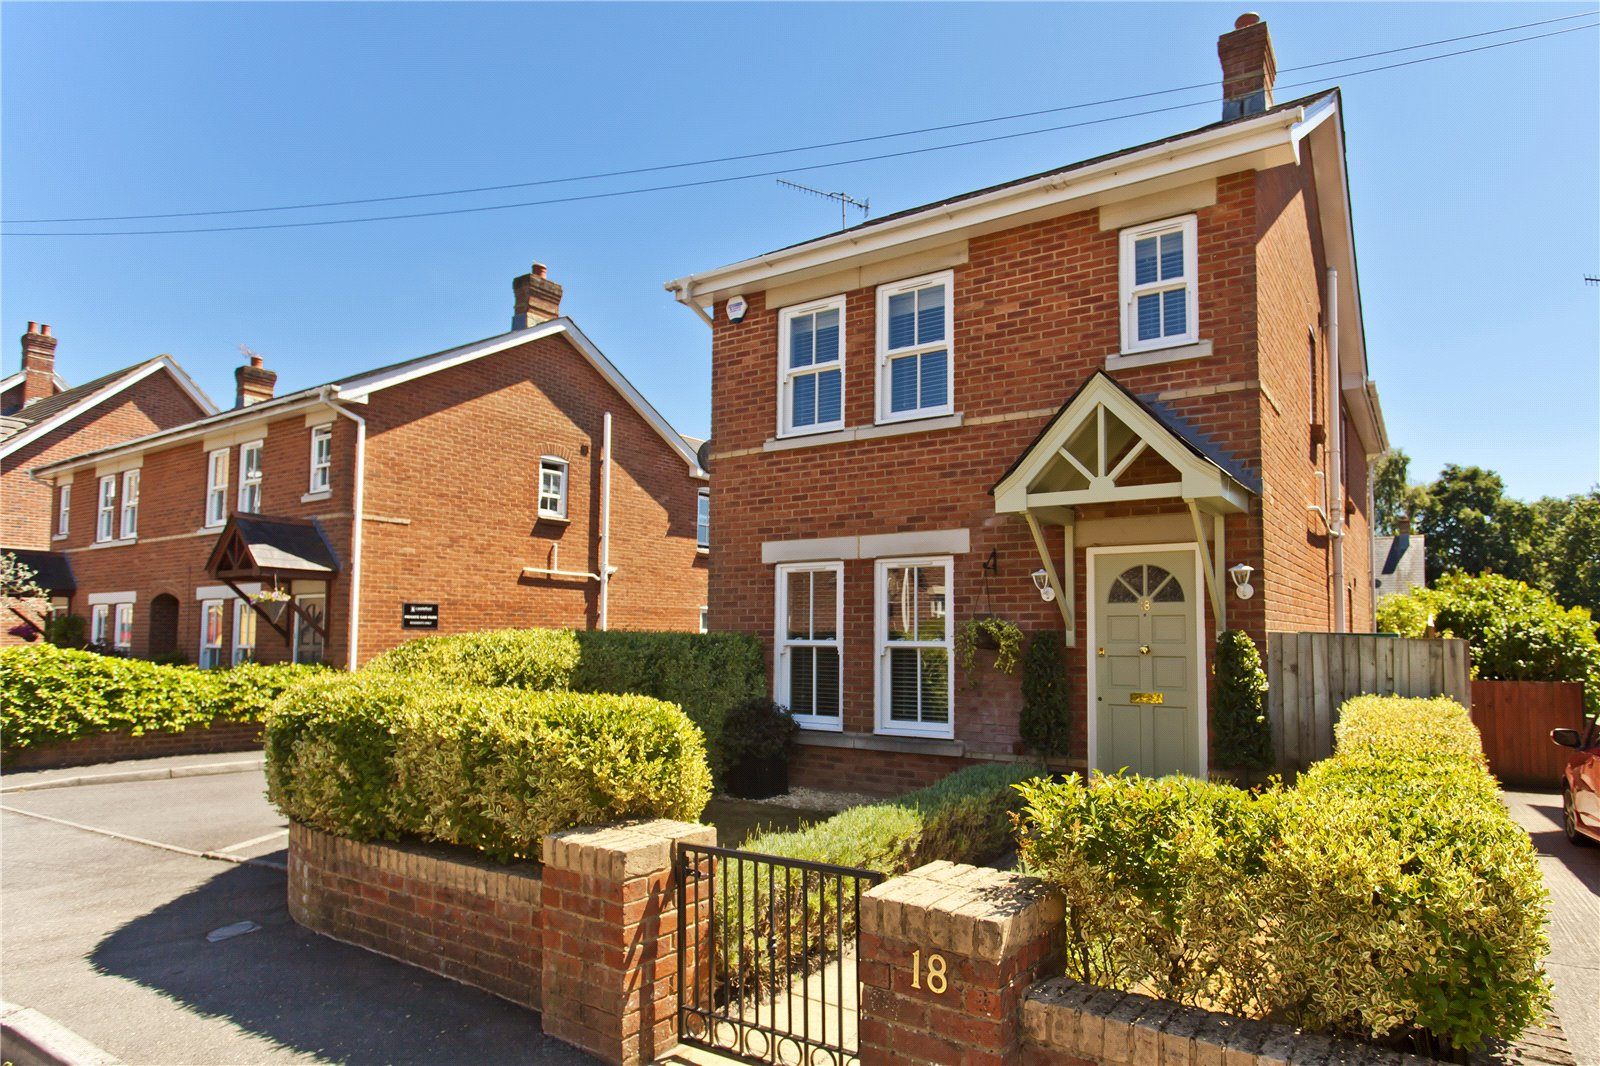 3 bed house for sale in Wessex Road, Lower Parkstone  - Property Image 1